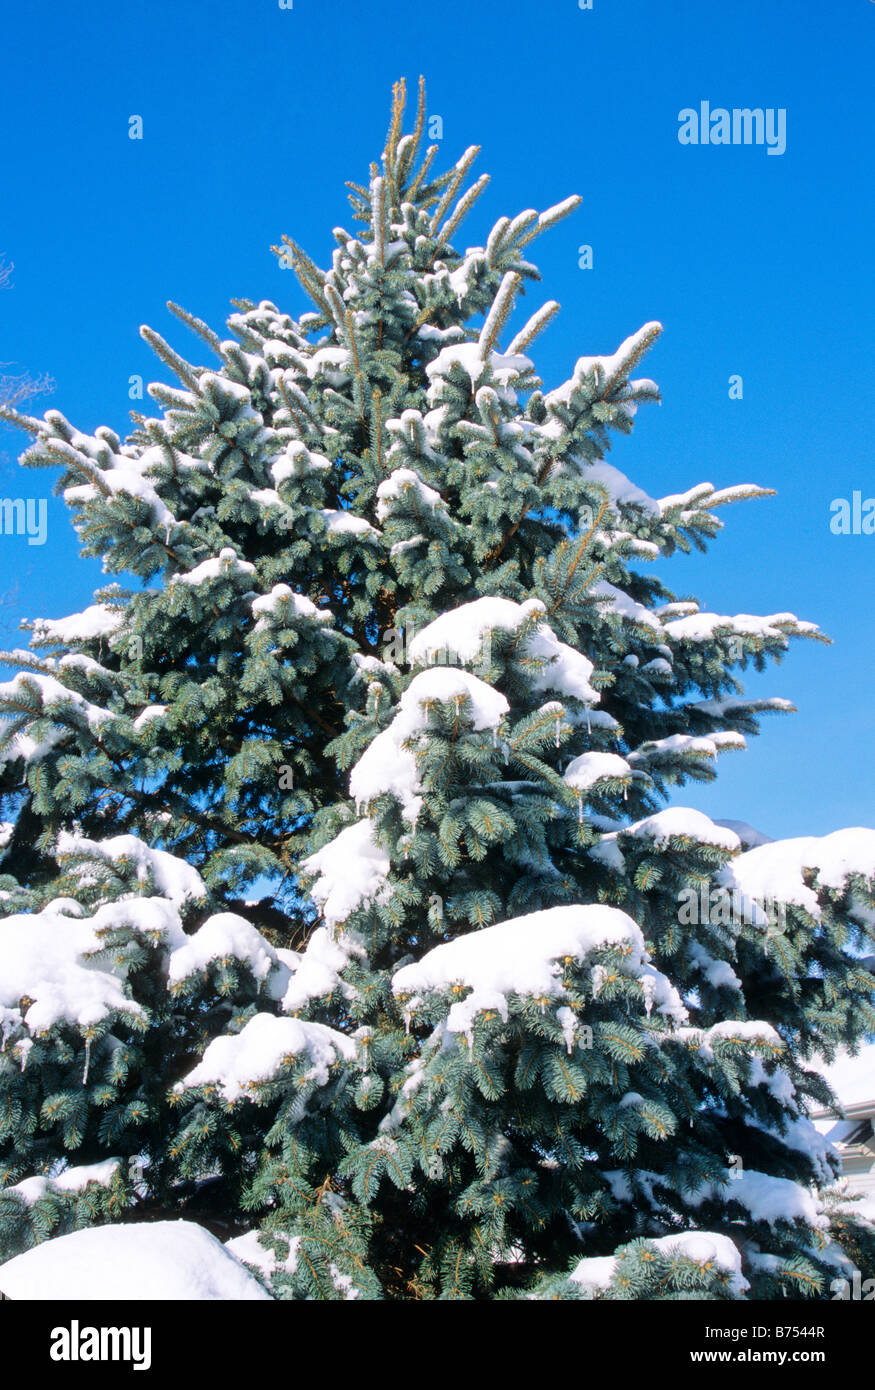 Fresh snow on fir tree Colorado blue spruce nature natural